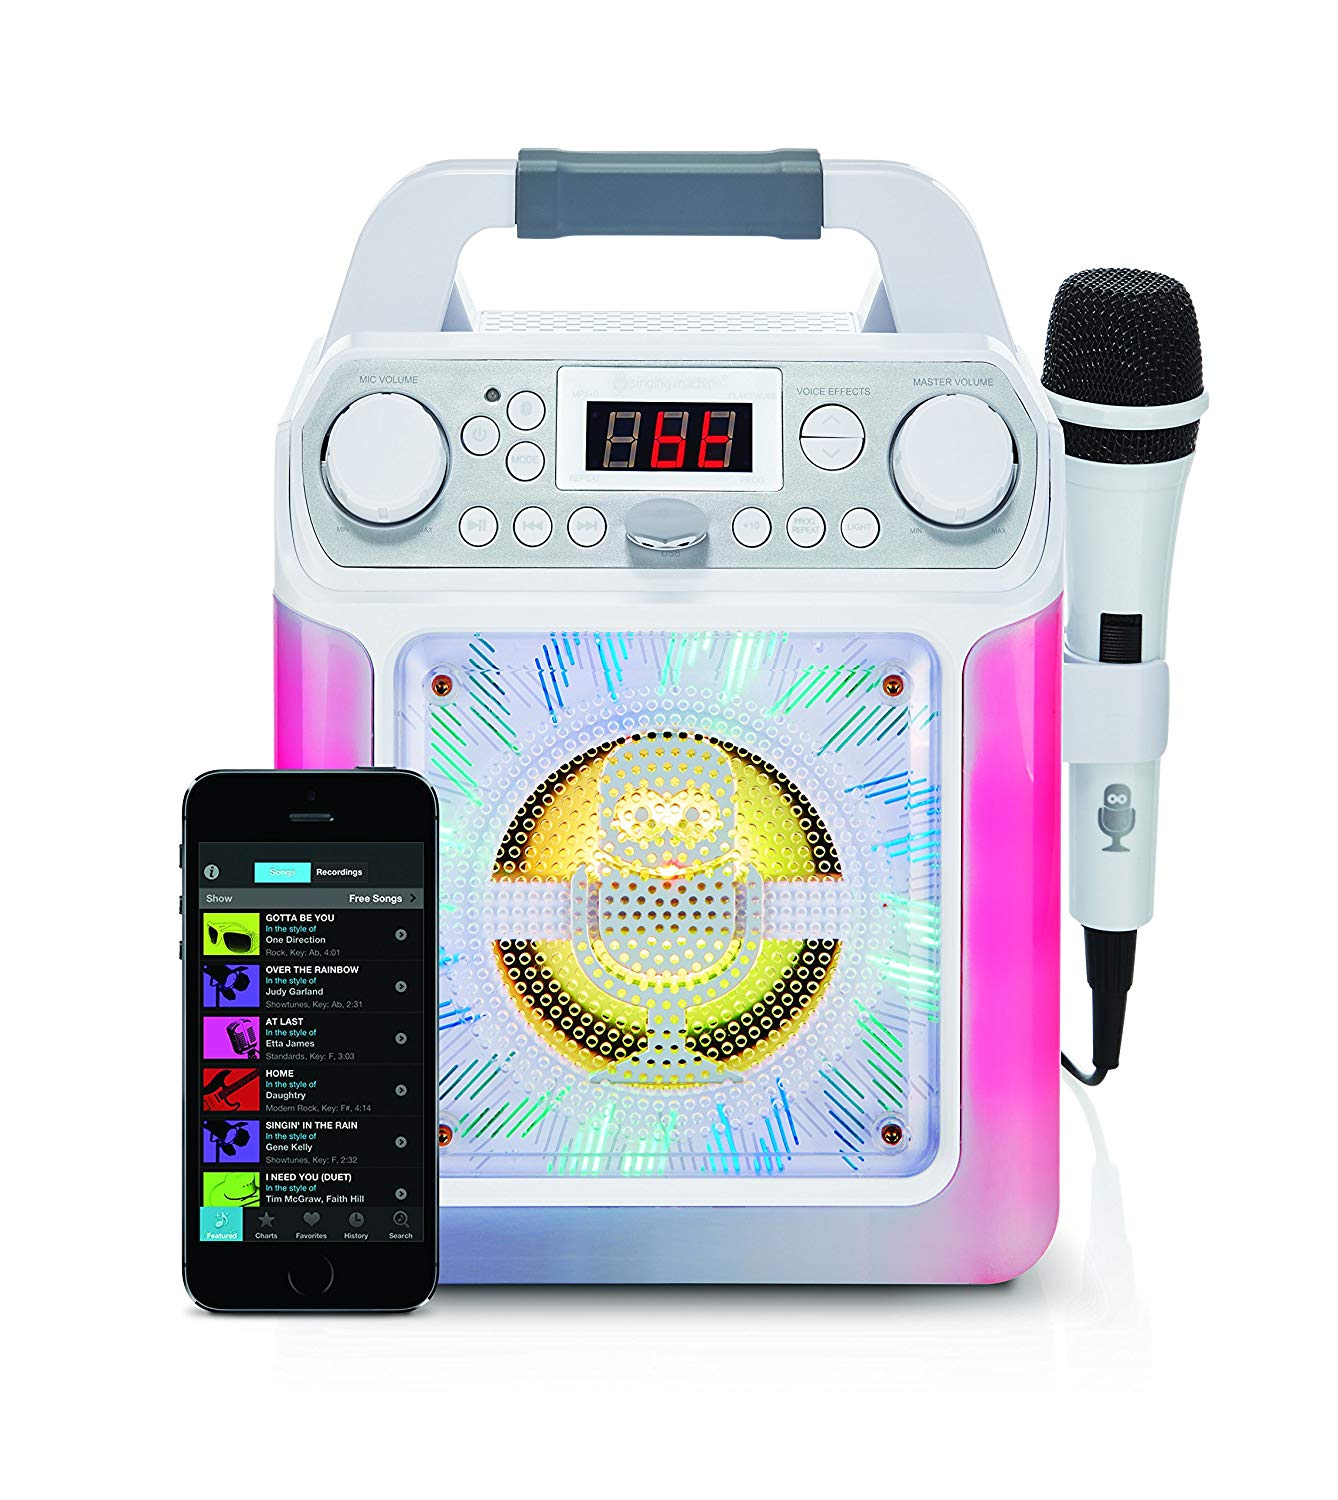 Groove Mini Singing Machine £37.10